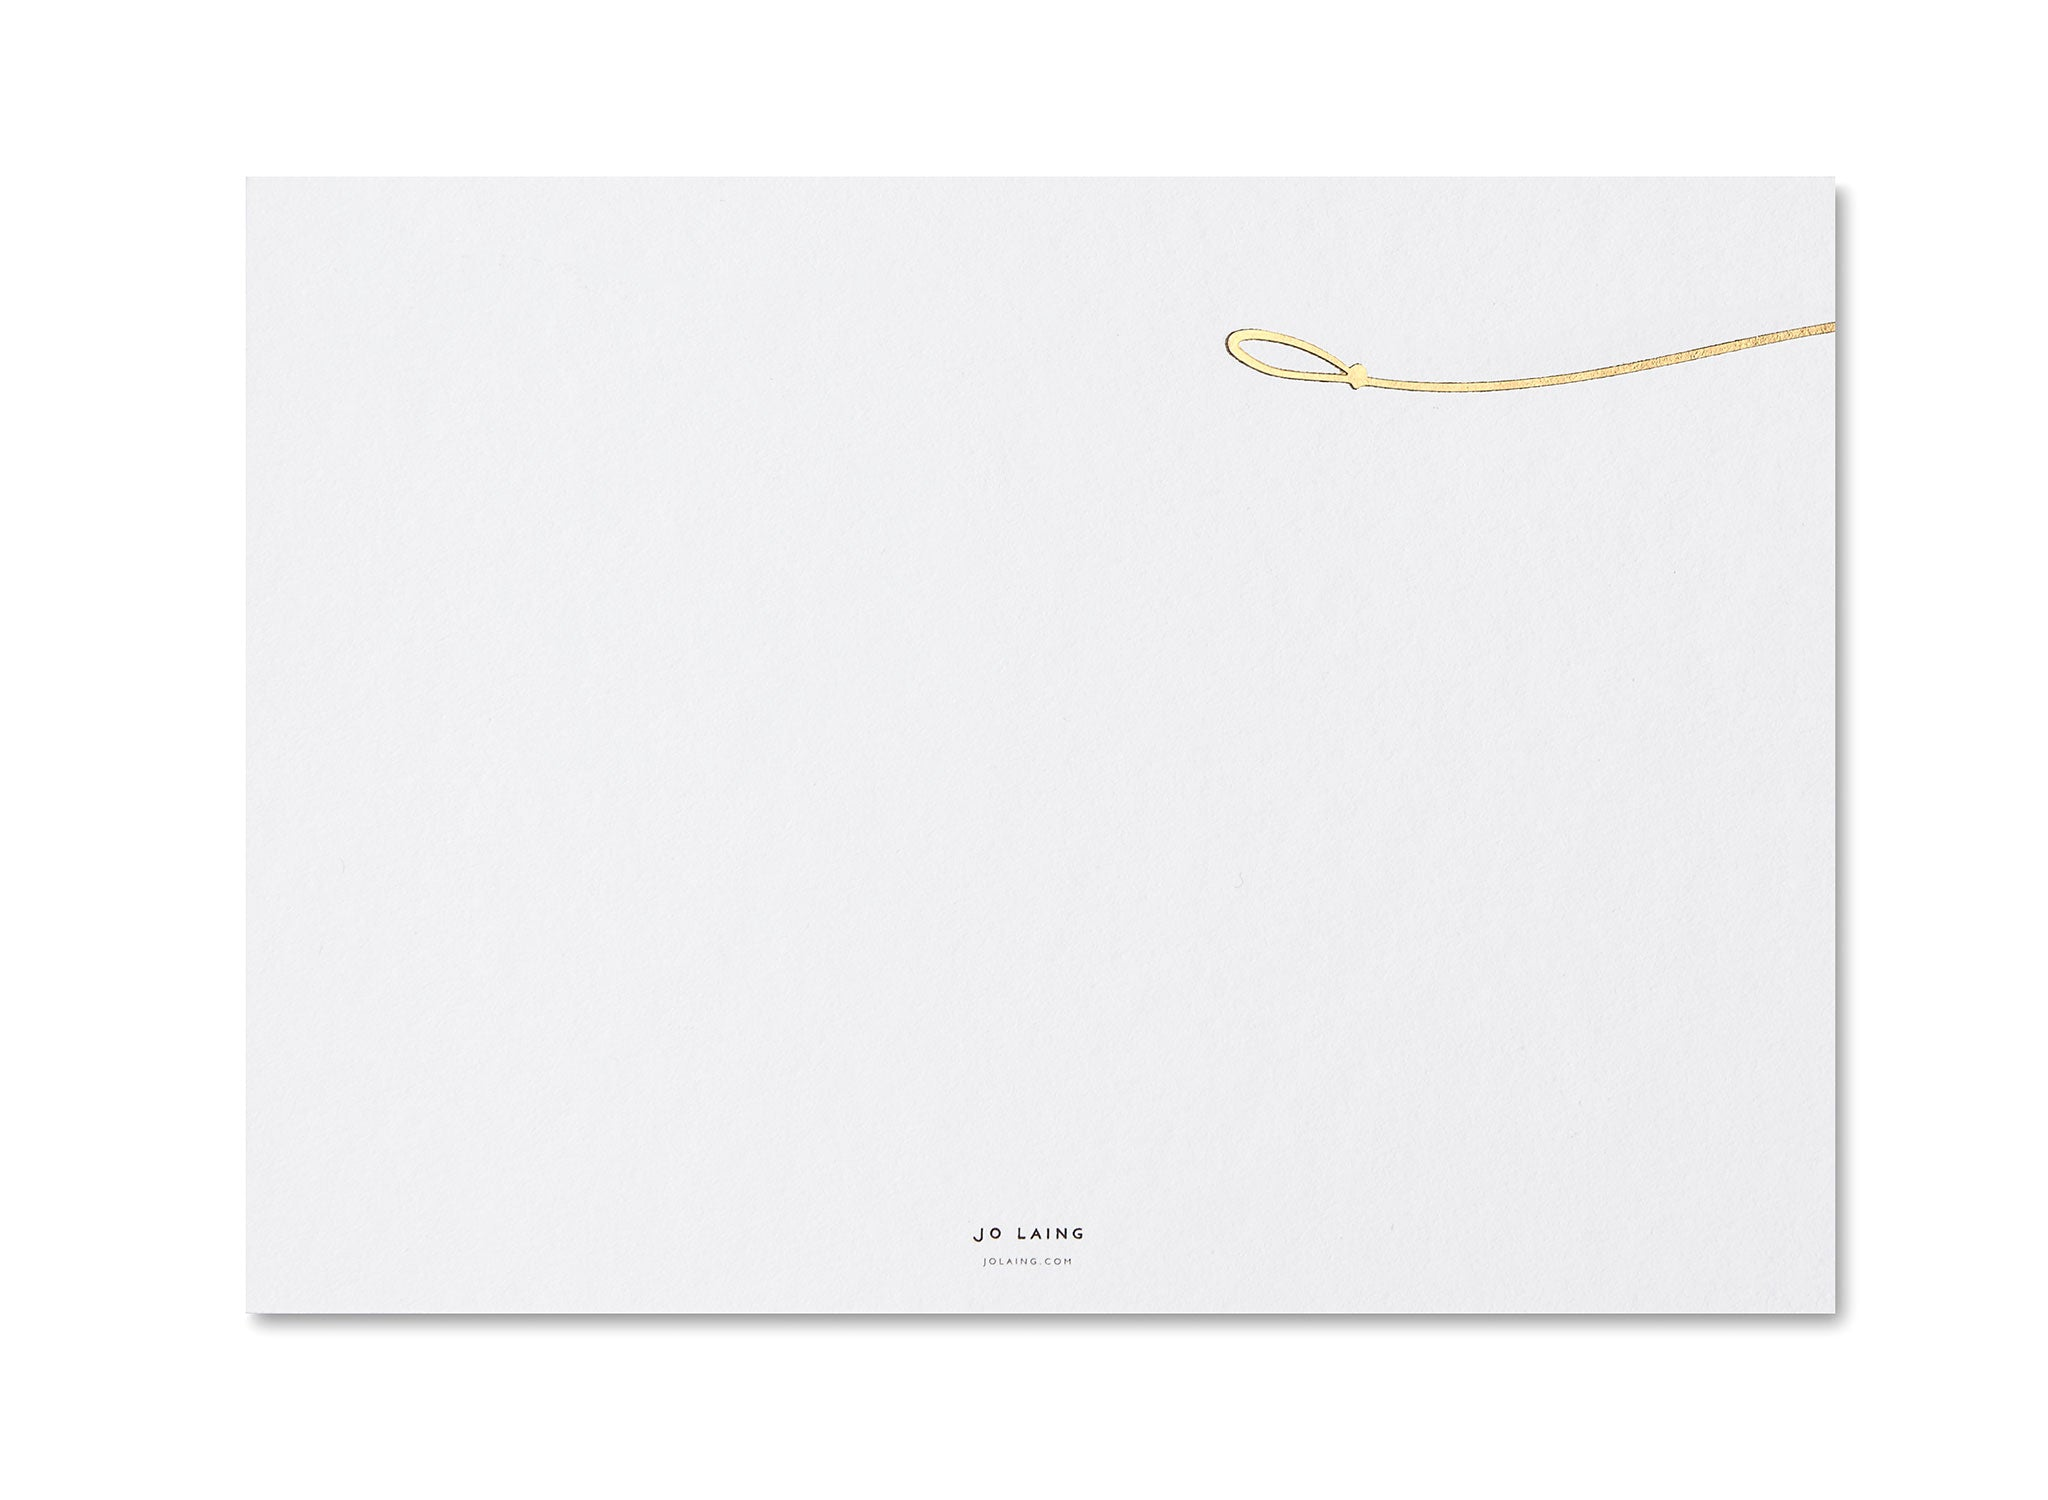 Jo Laing - Hello Sausage Correspondence Cards - luxury stationery and notecards made in England